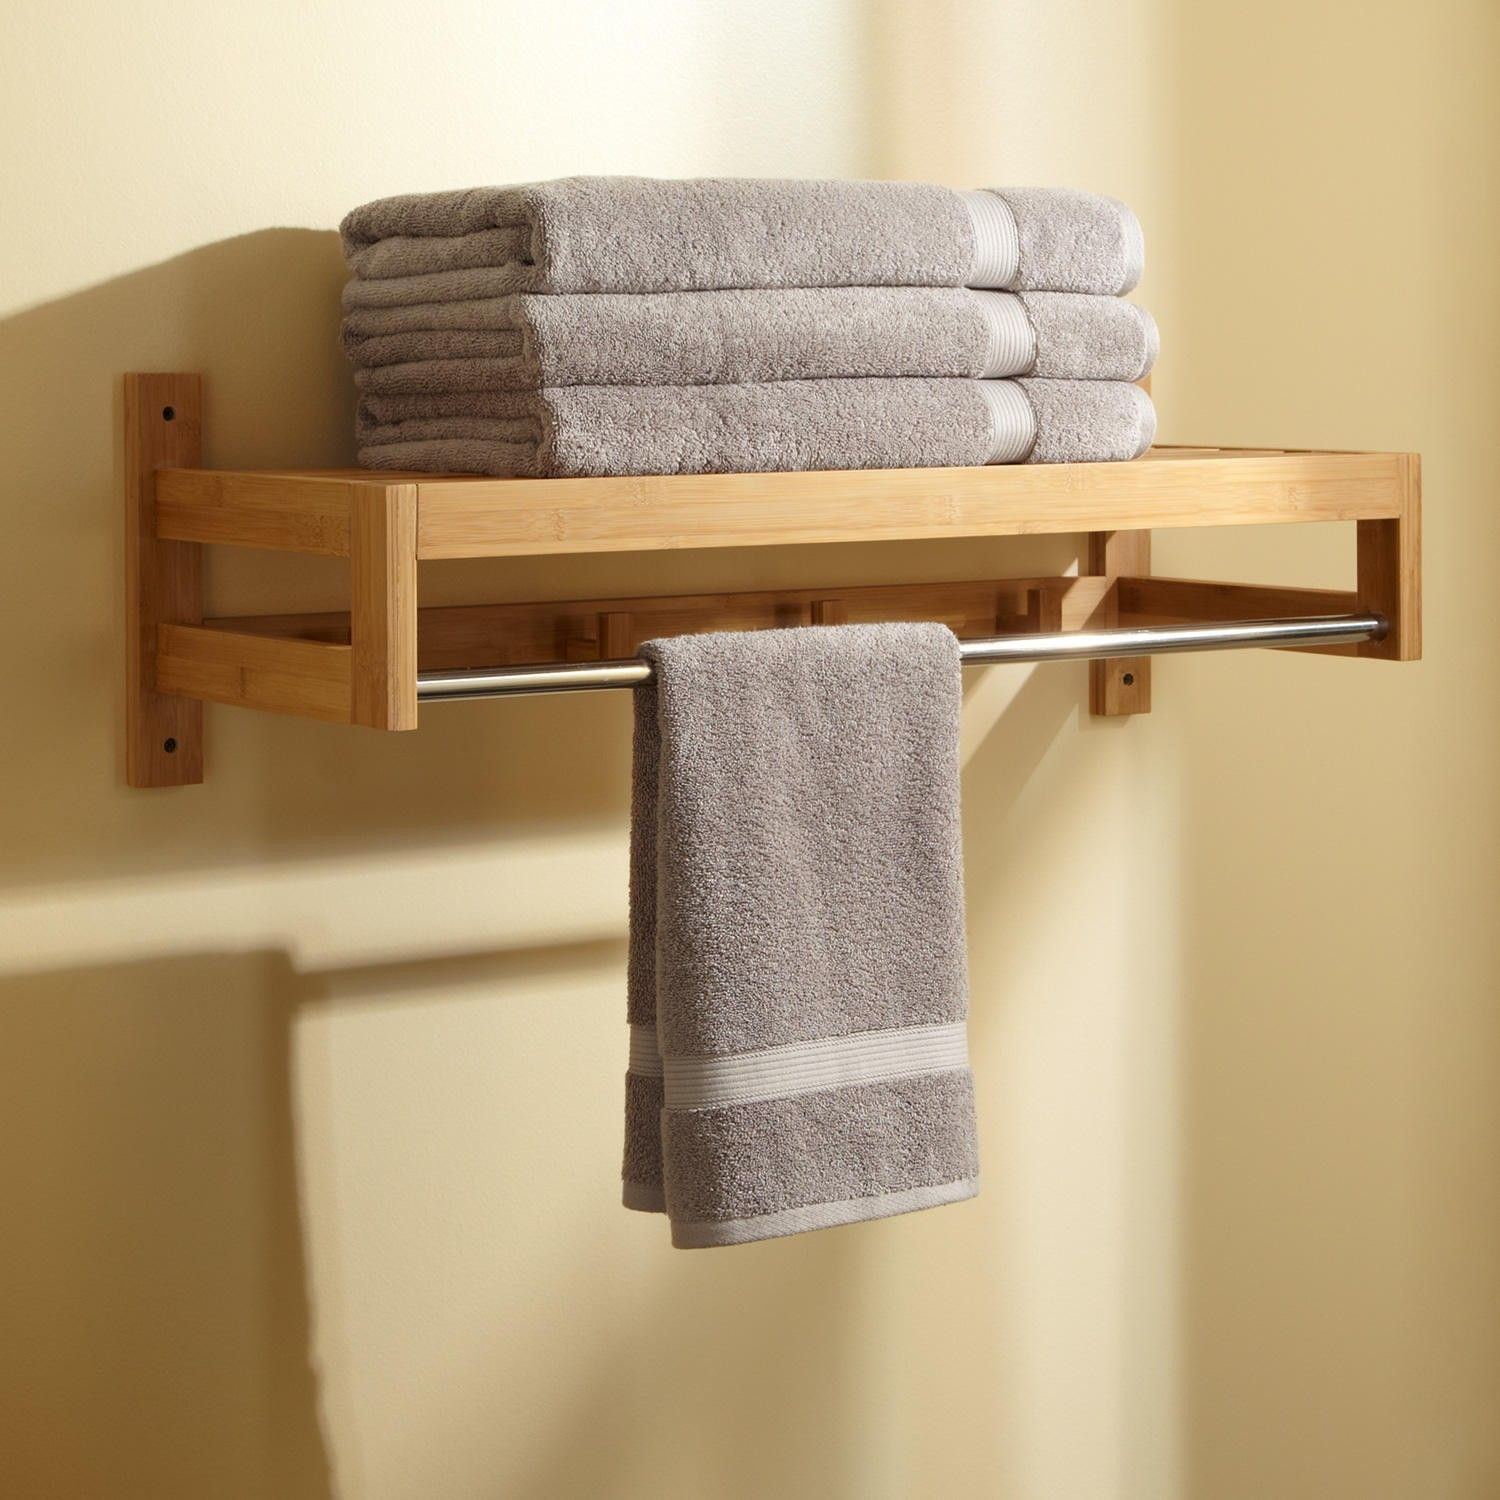 Pathein Bamboo Towel Rack With Hooks Bathroom Bathroom Towel Decor Bathroom Towel Storage Bath Towel Racks